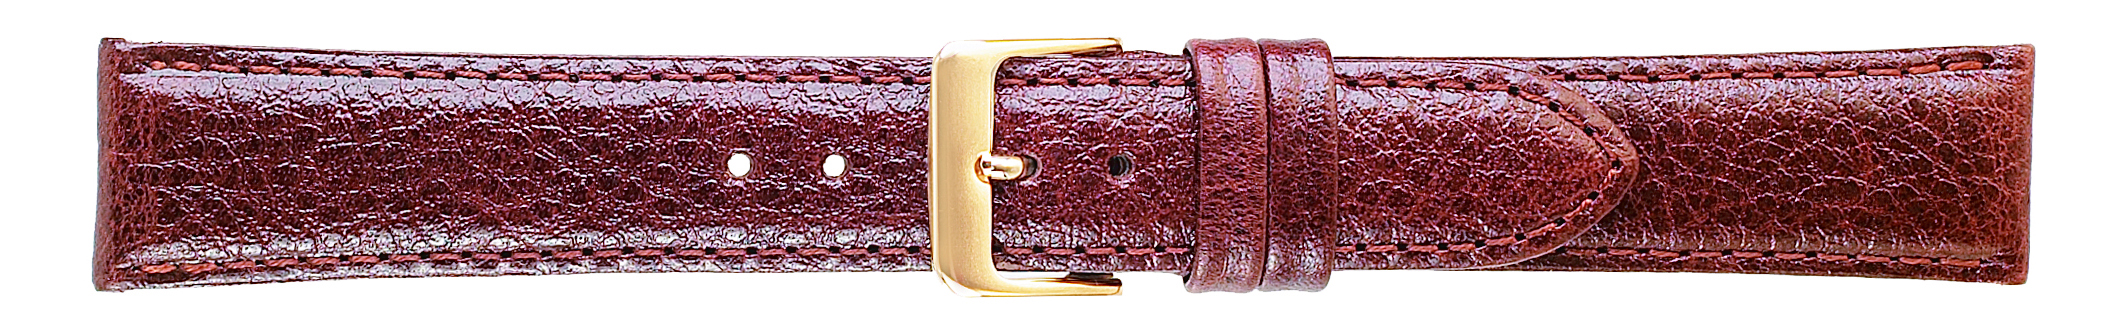 18MM Polished Calf Brown Leather Strap-0